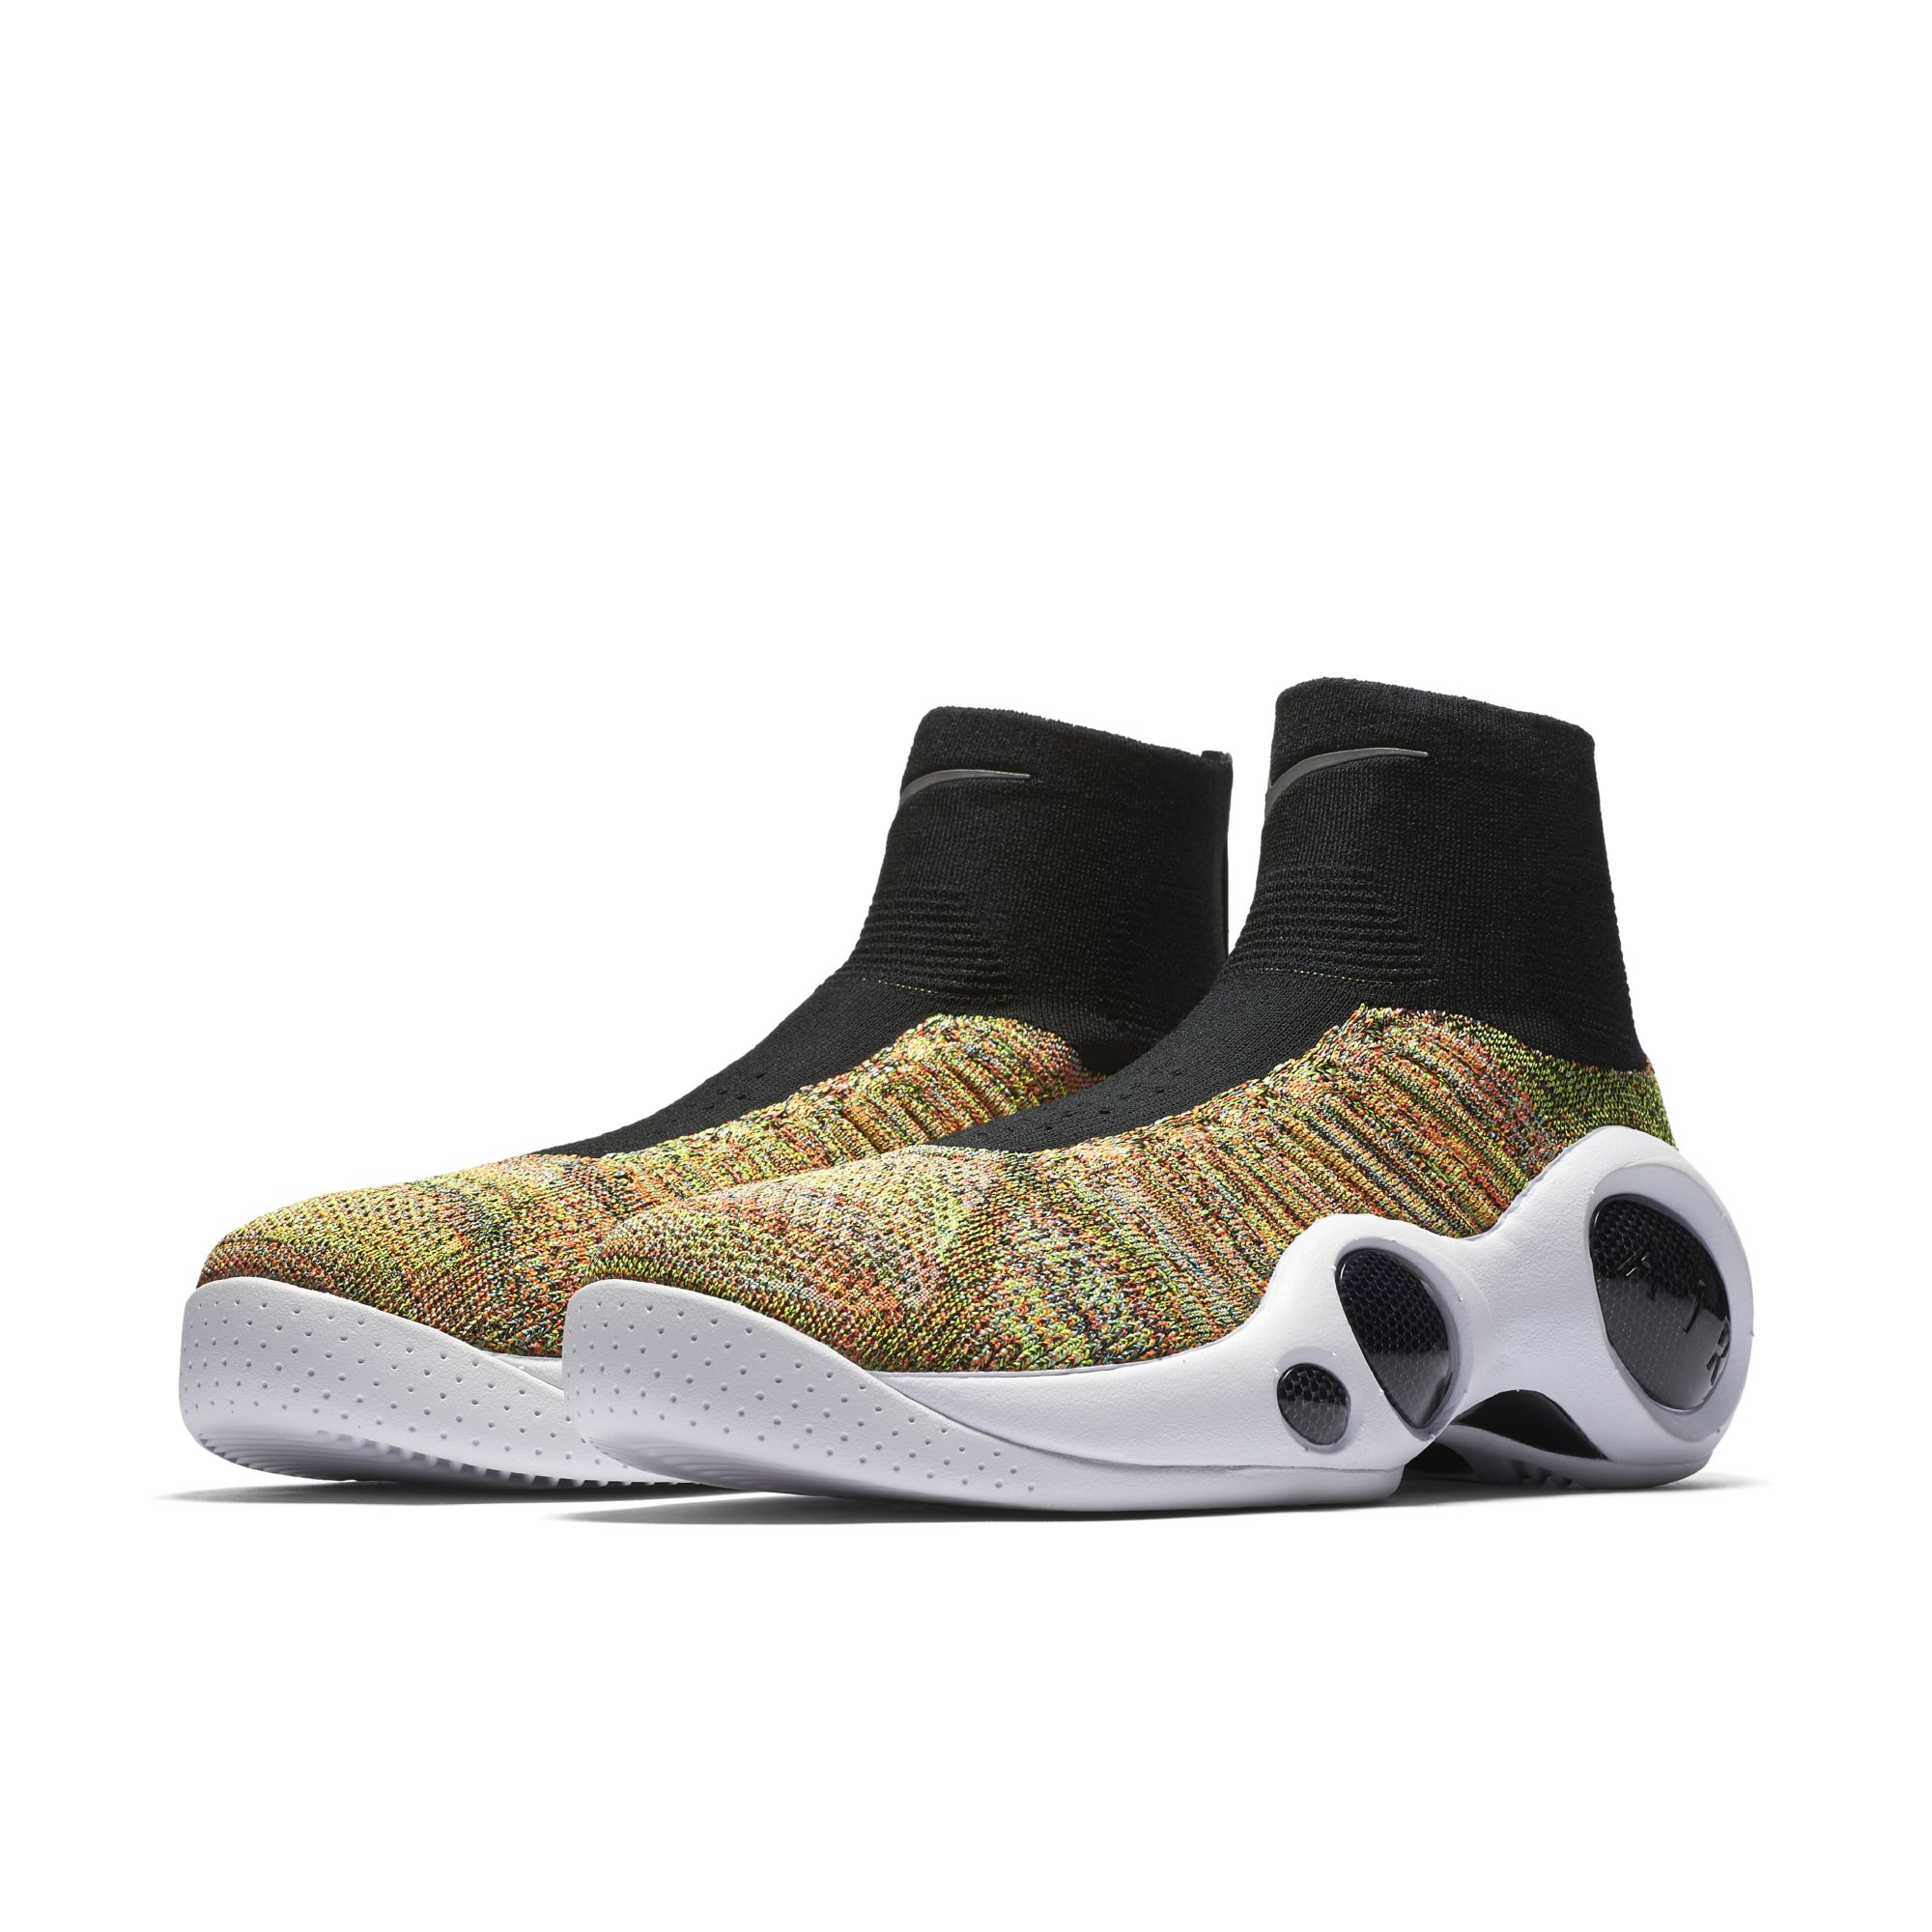 Nike Zoom Bonifide Multicolor – Full